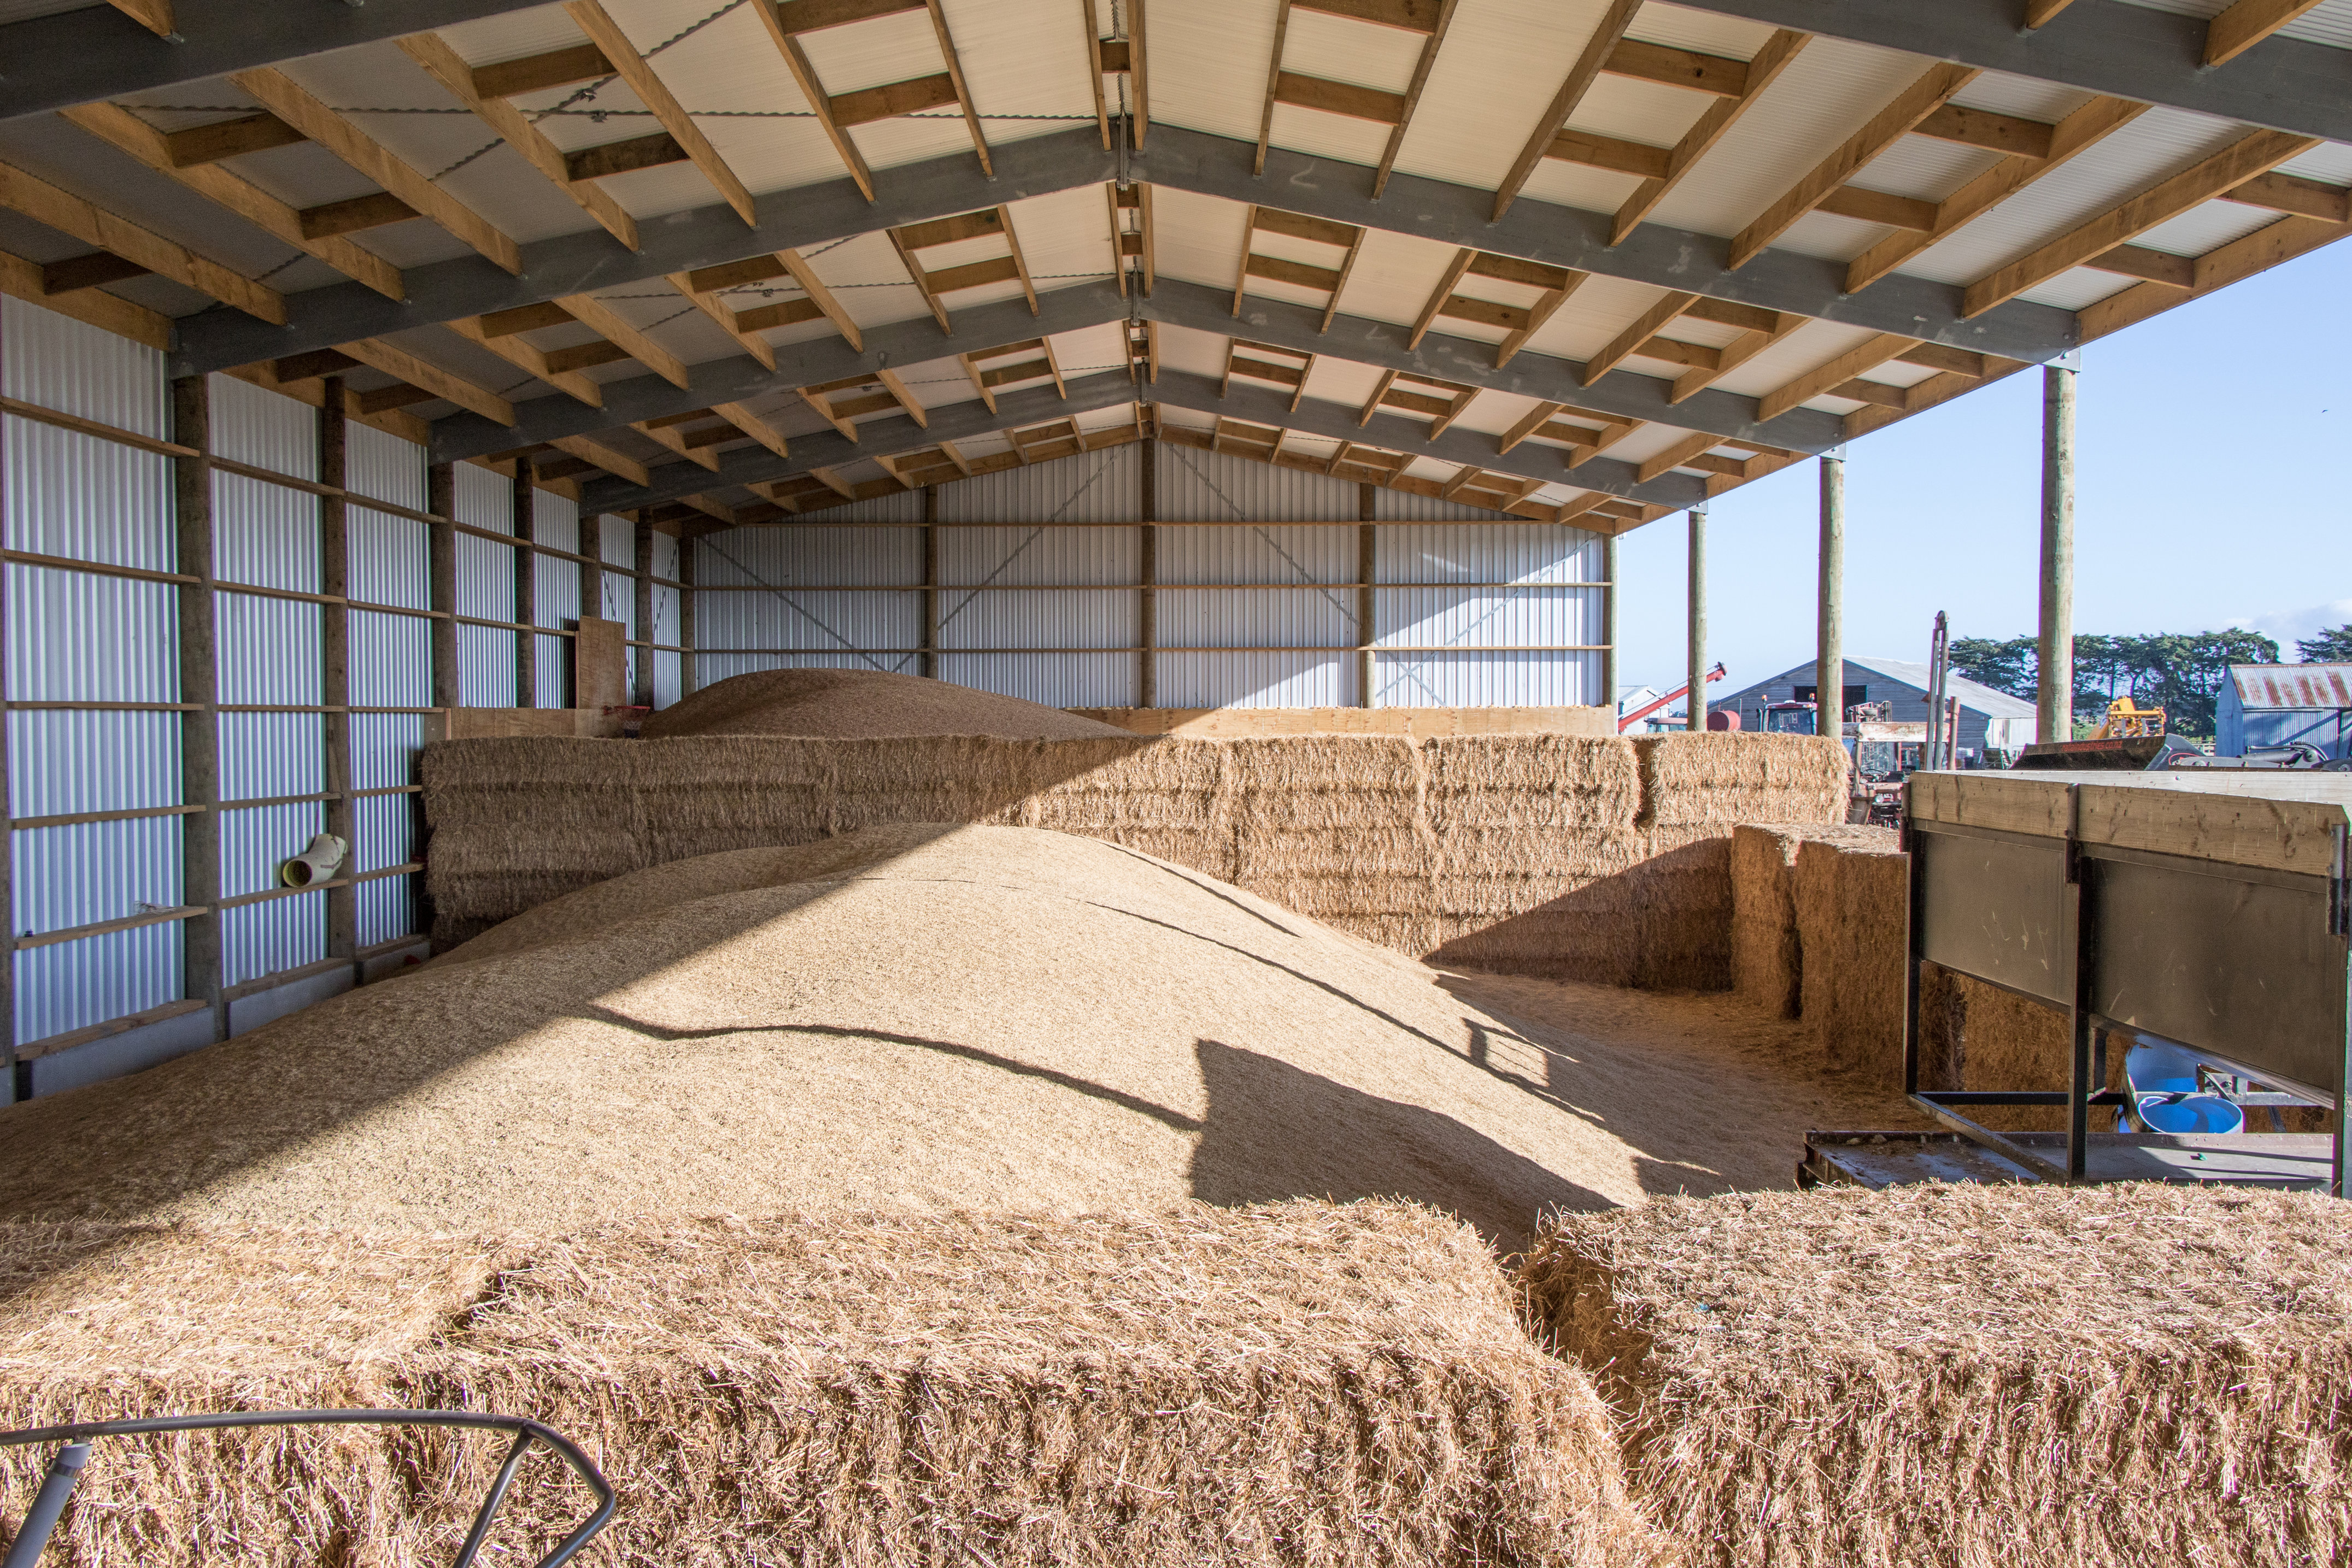 Examples of hay sheds